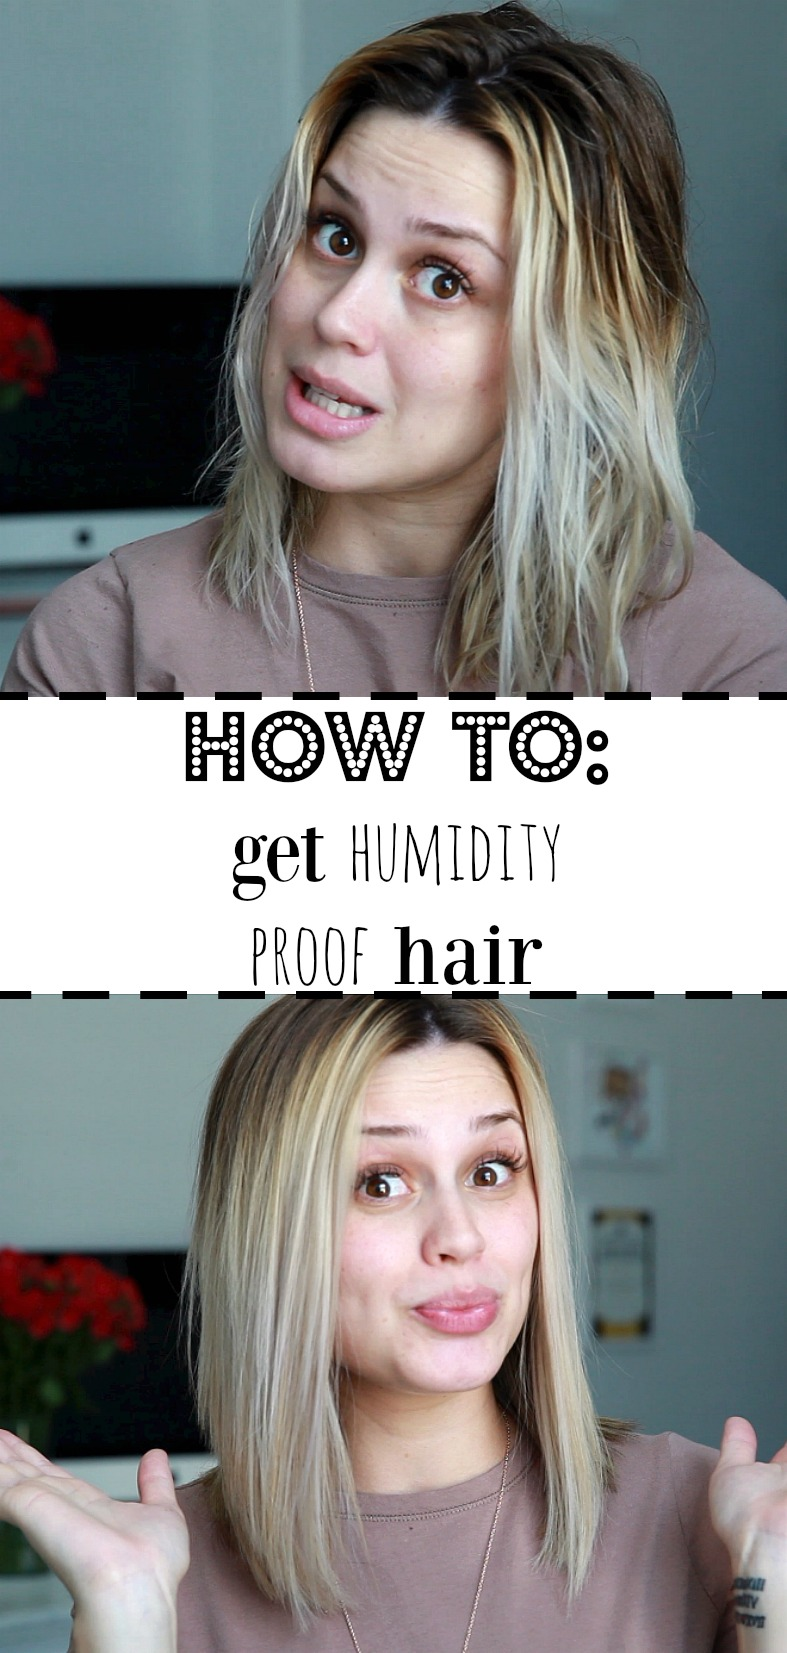 Humidity Proof Hair: Beauty & Lifestyle blogger Elly from Uptown With Elly Brown shares an easy tutorial for beating the heat with humidity proof hair.